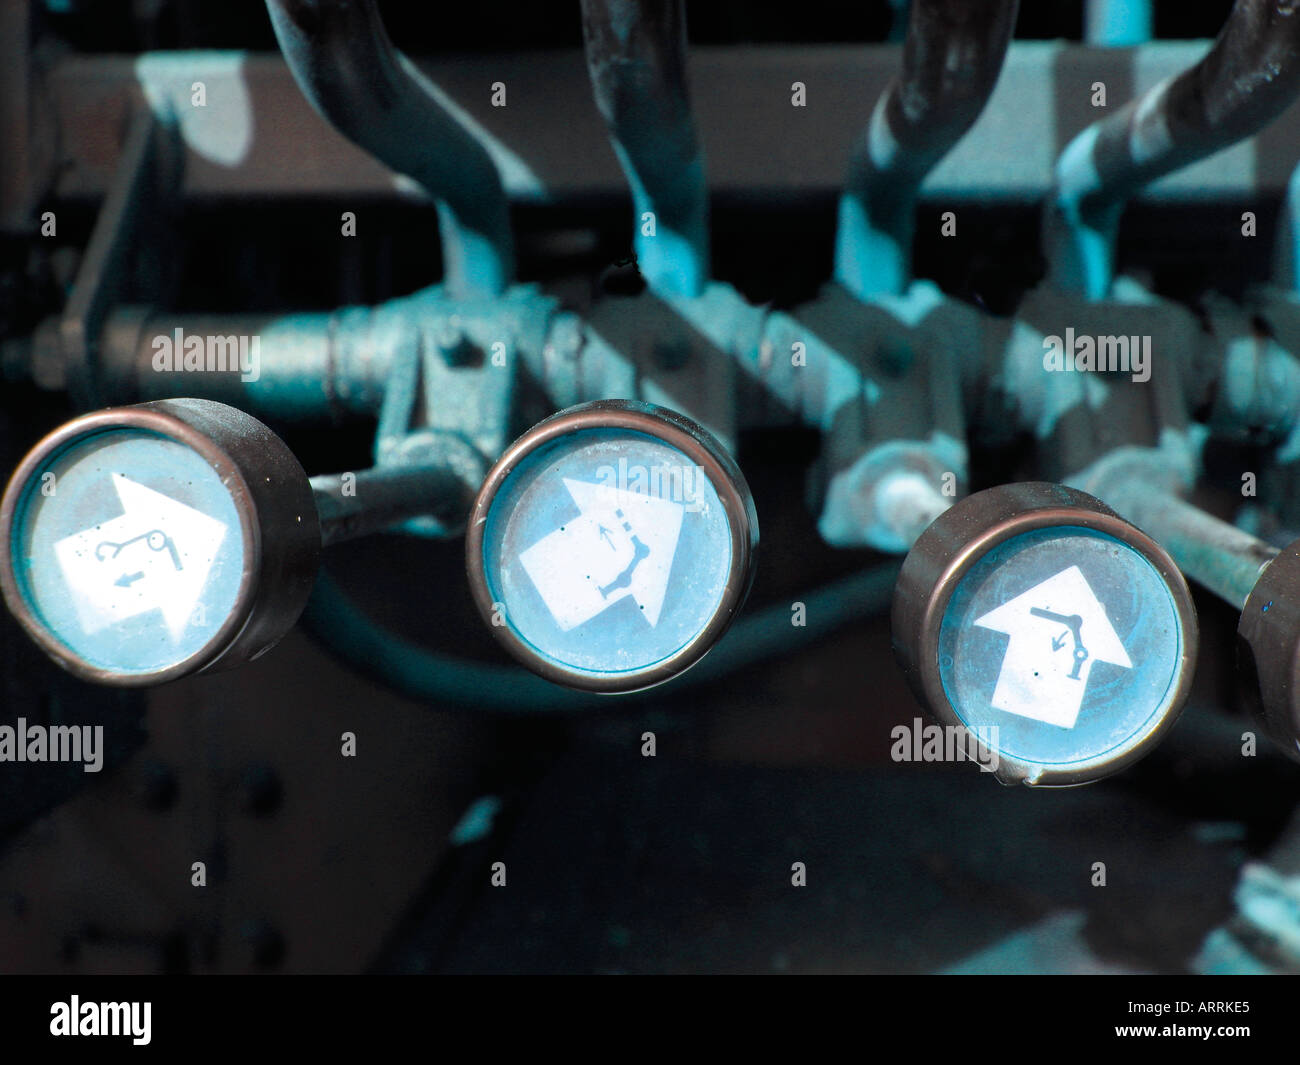 Arrows on machinery levers - Stock Image